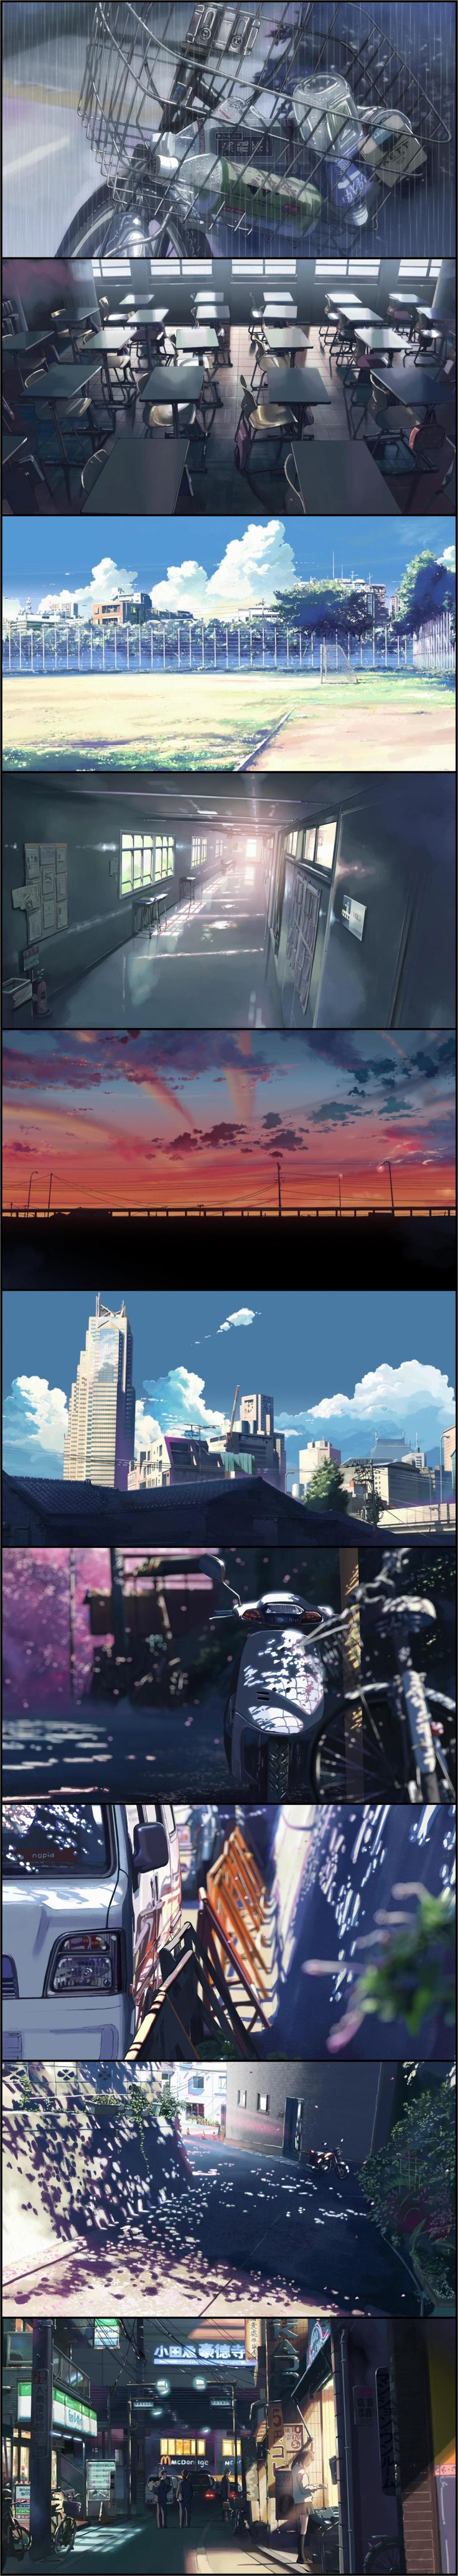 5 Centimeters Per Second review: graphics overload it's not the best graphics out there but it should do the story is so real and depressing you shold watch it probobly the only real love story in movies, the music is so emotional